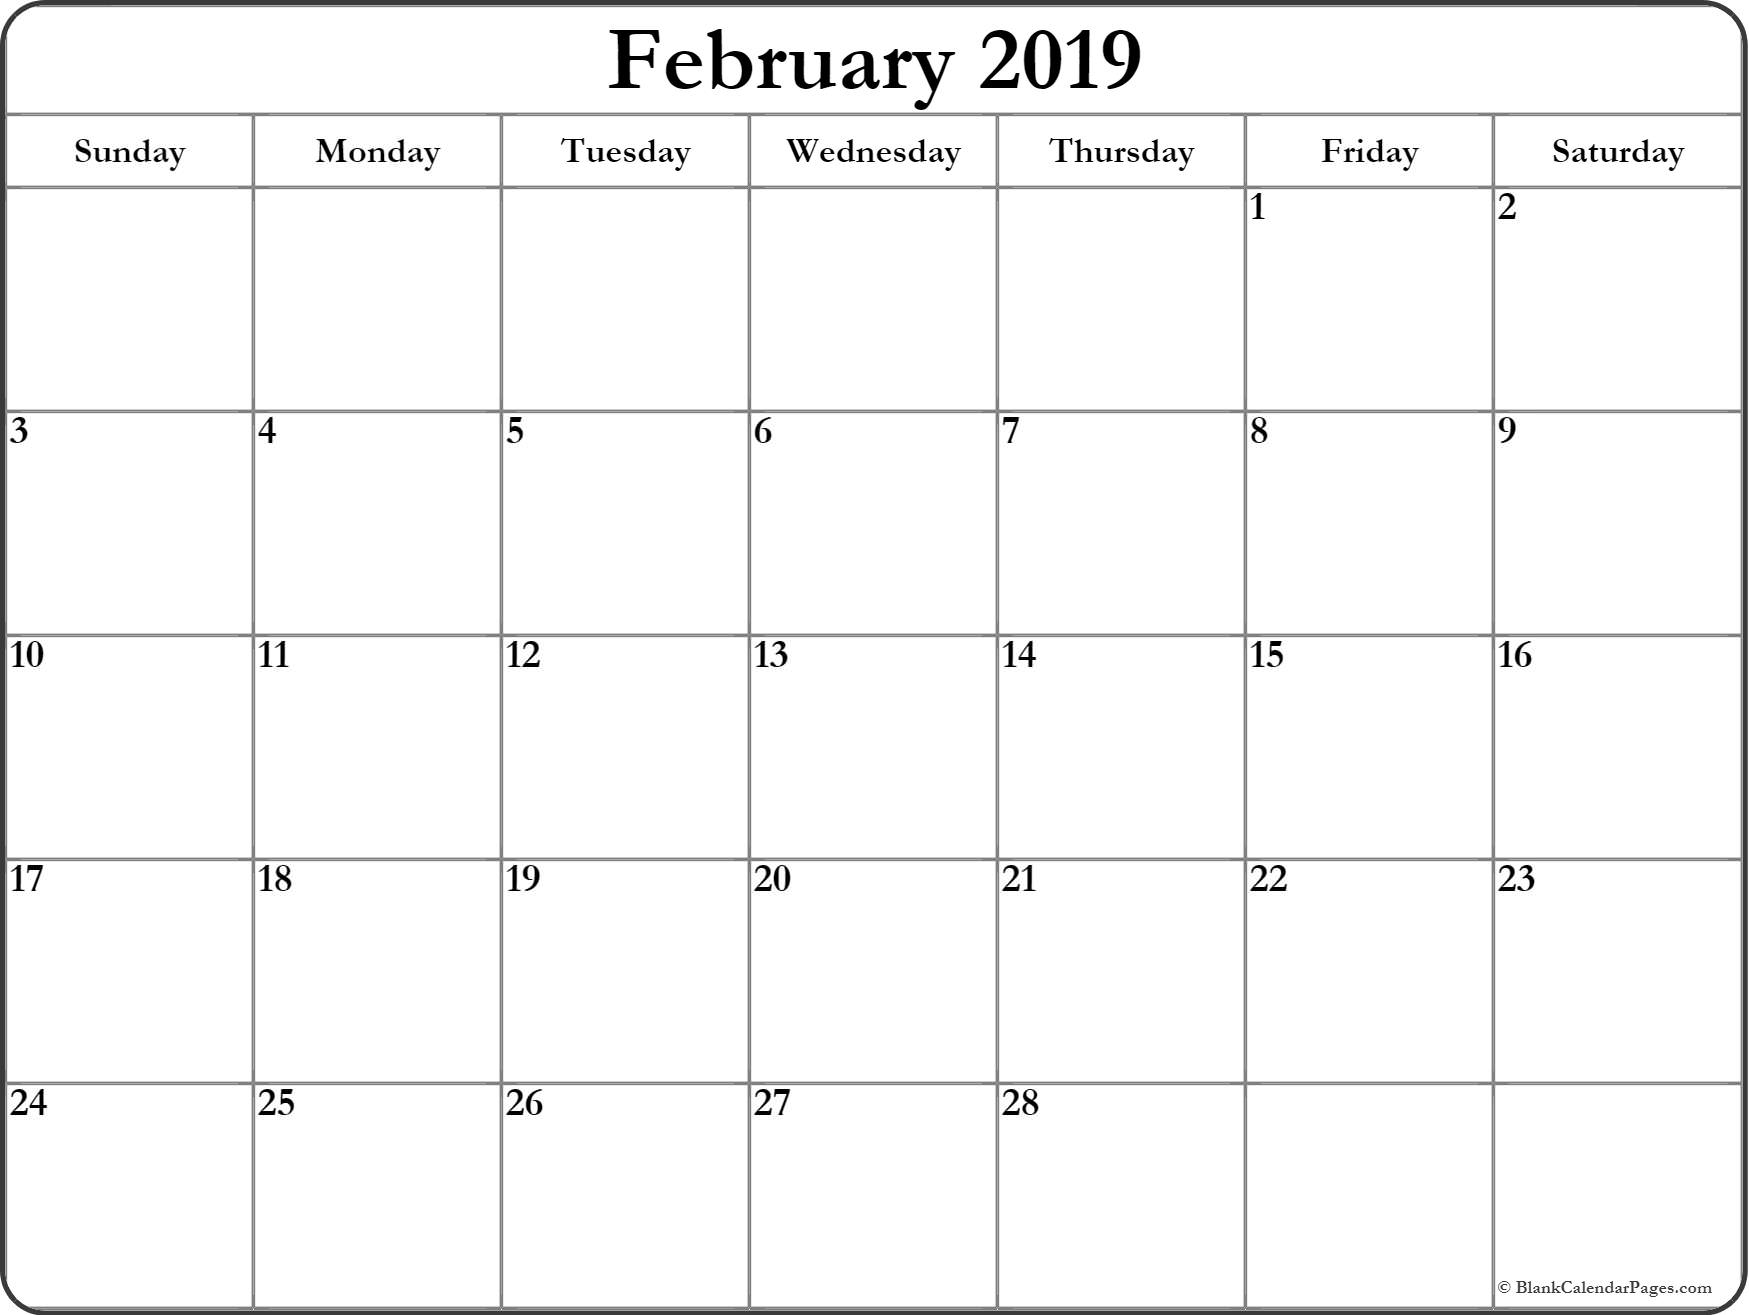 February 2019 Calendar | Free Printable Monthly Calendars for Free Printable Blank Calendar Month 1